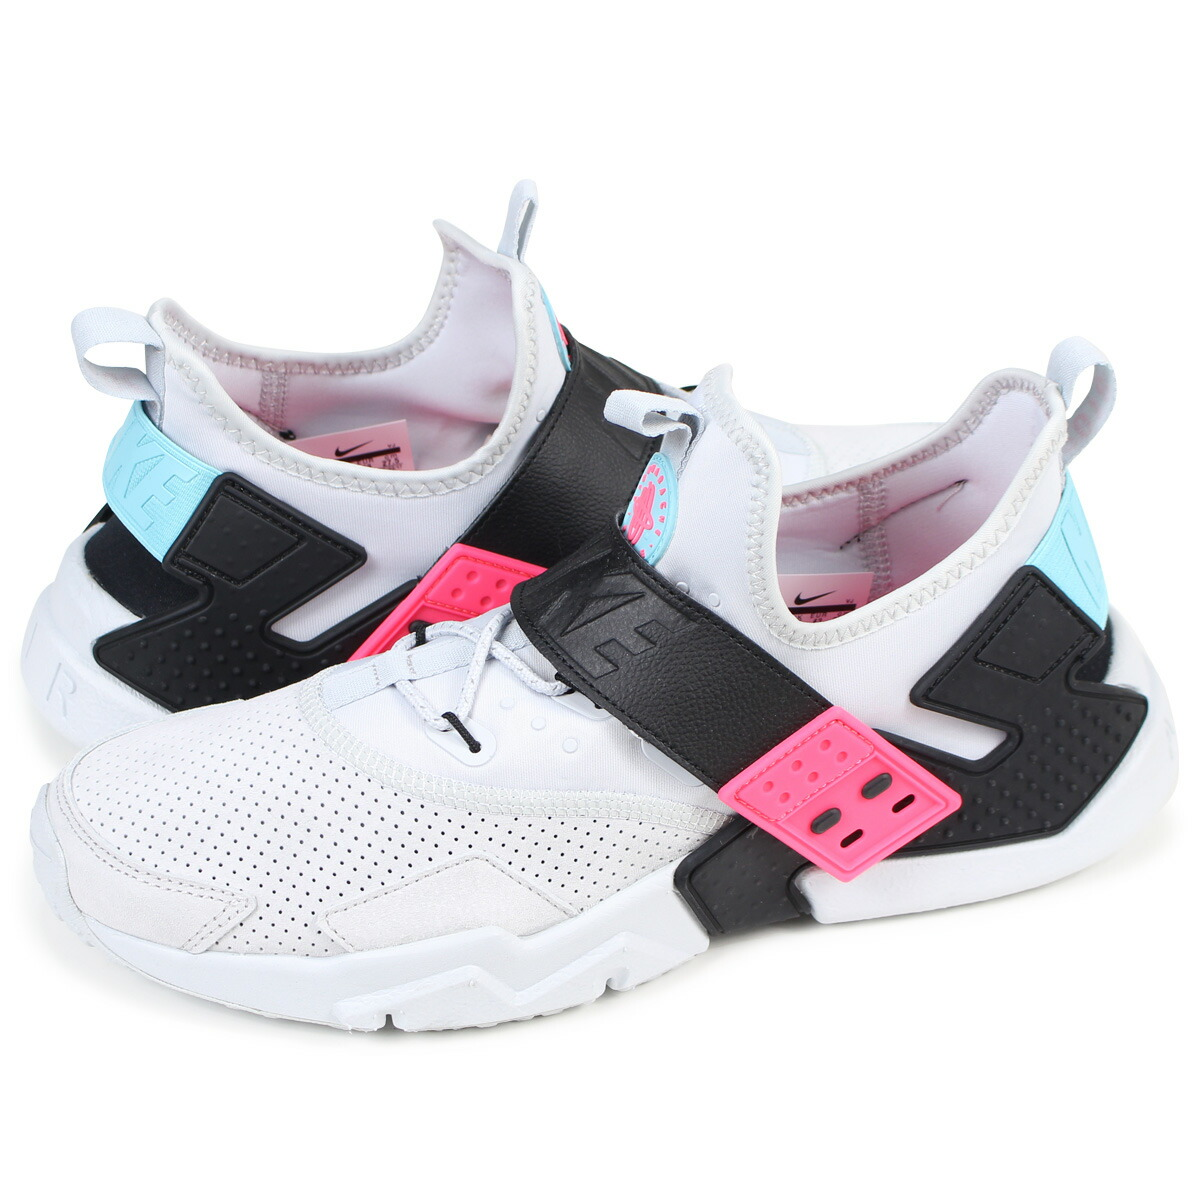 fc478353fcd0 Product Information Product Information. New Arrivals 2018 Air Huarache  Drift ...